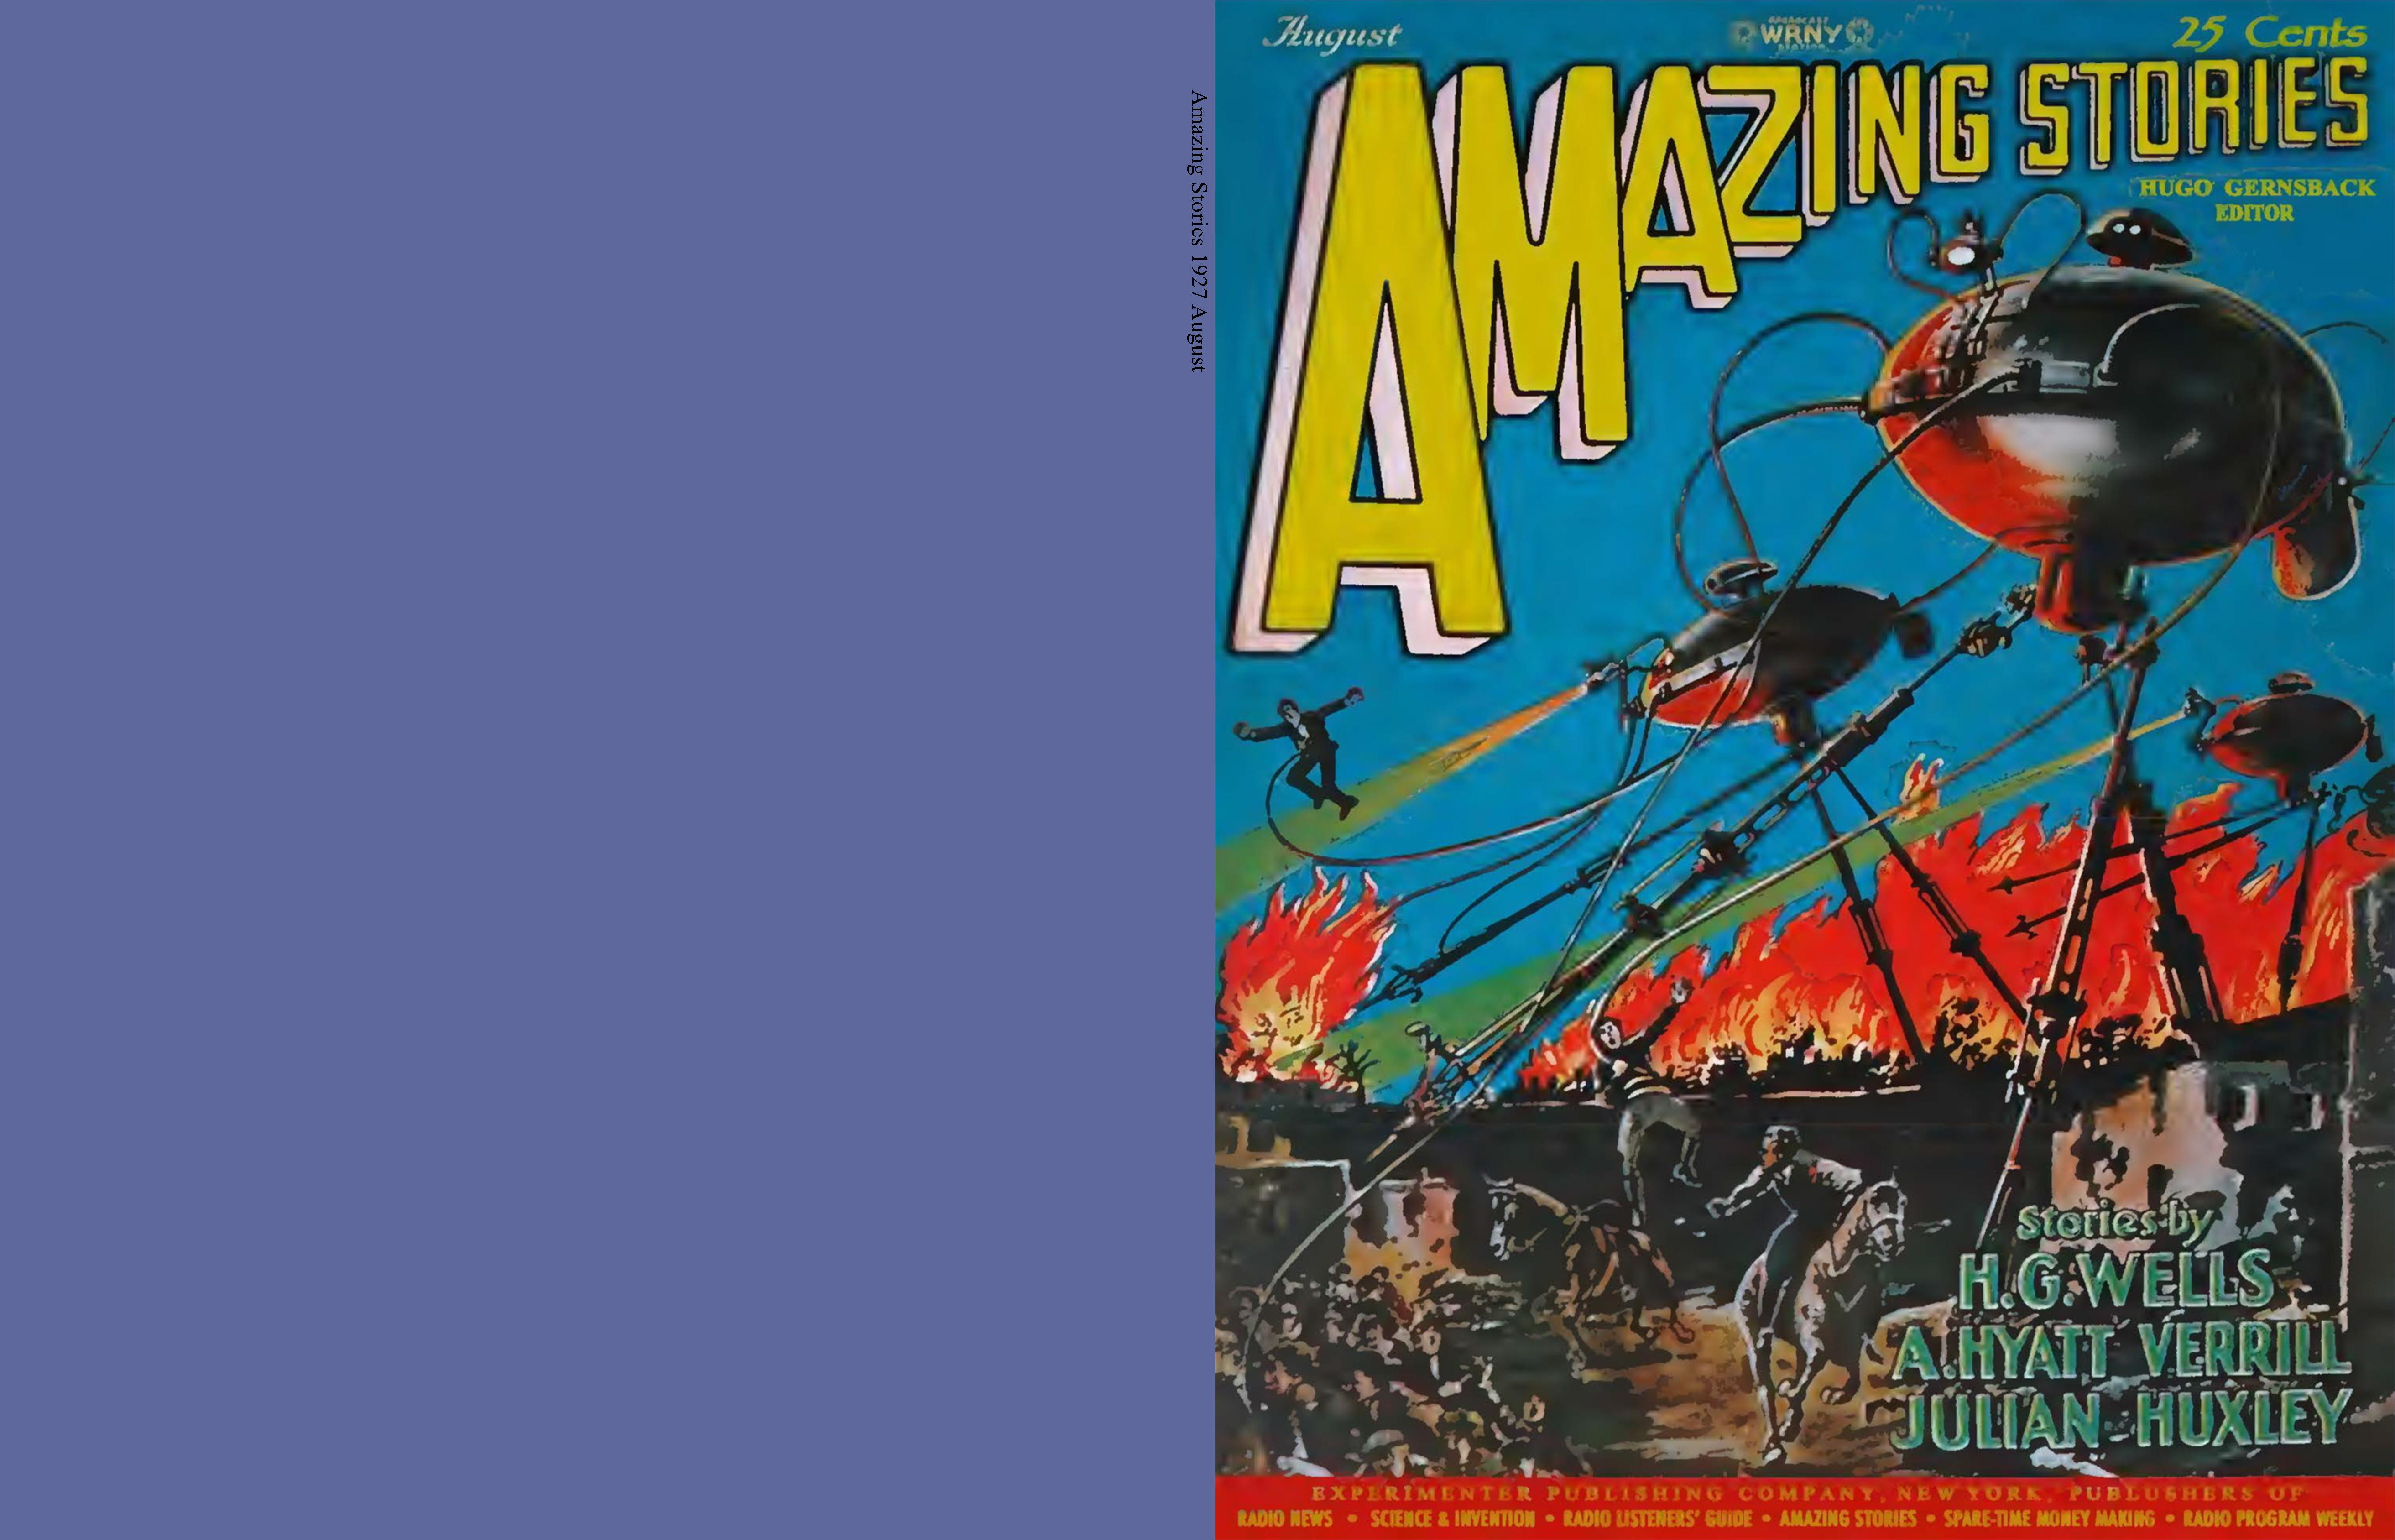 Amazing Stories 1927 August cover image